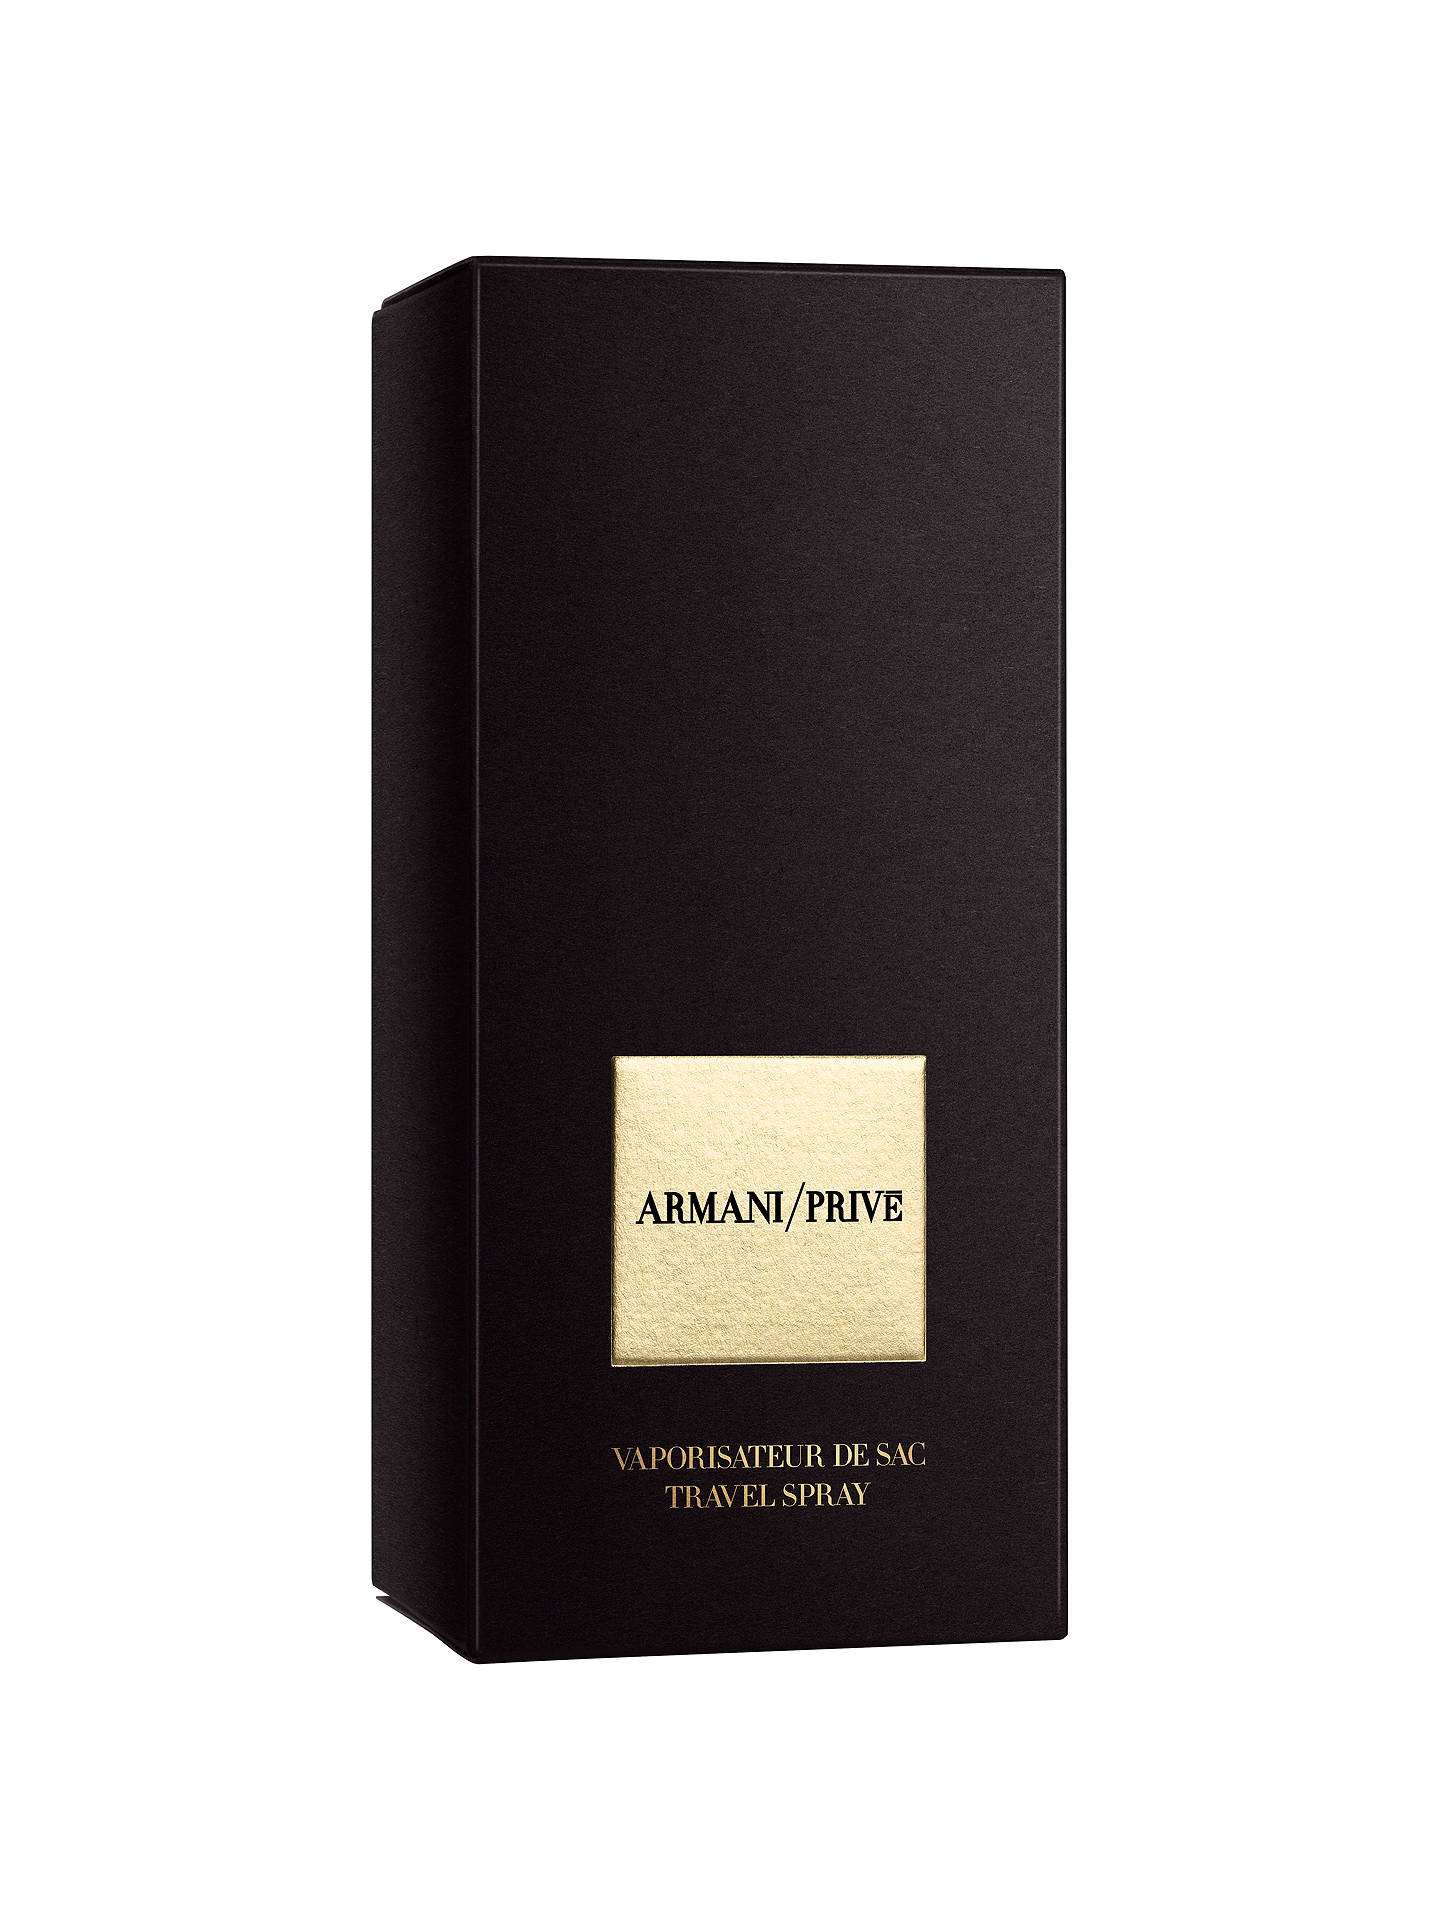 BuyGiorgio Armani / Privé Travel Spray Case Online at johnlewis.com